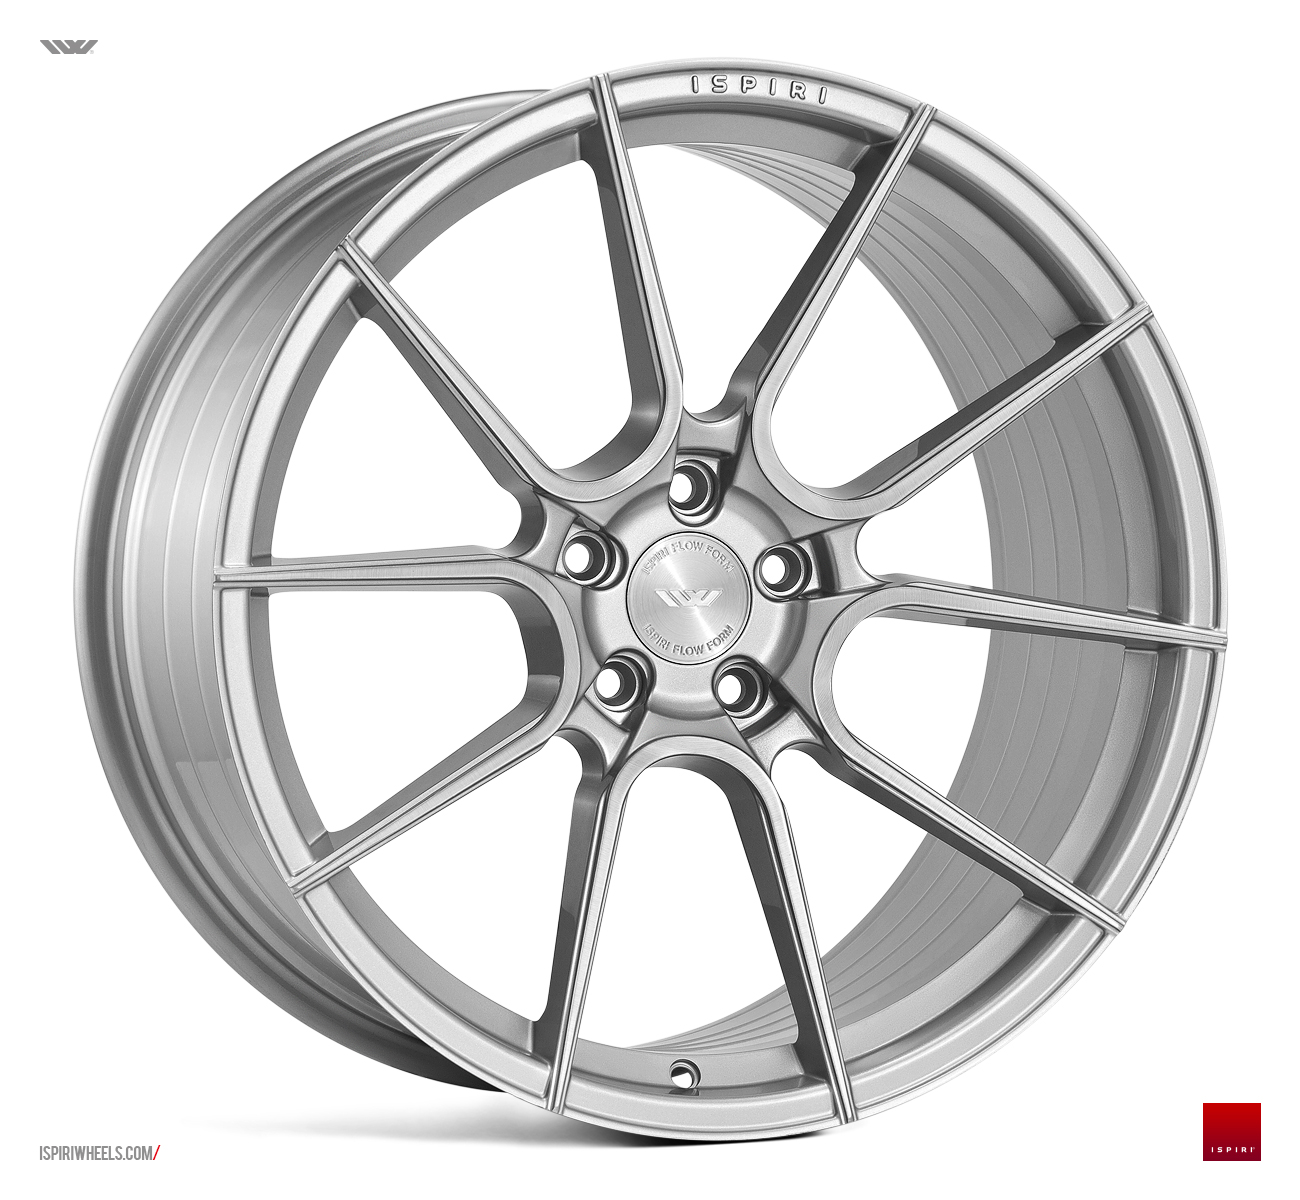 "NEW 20"" ISPIRI FFR6 TWIN 5 SPOKE ALLOY WHEELS IN PURE SILVER BRUSHED, VARIOUS FITMENTS AVAILABLE"